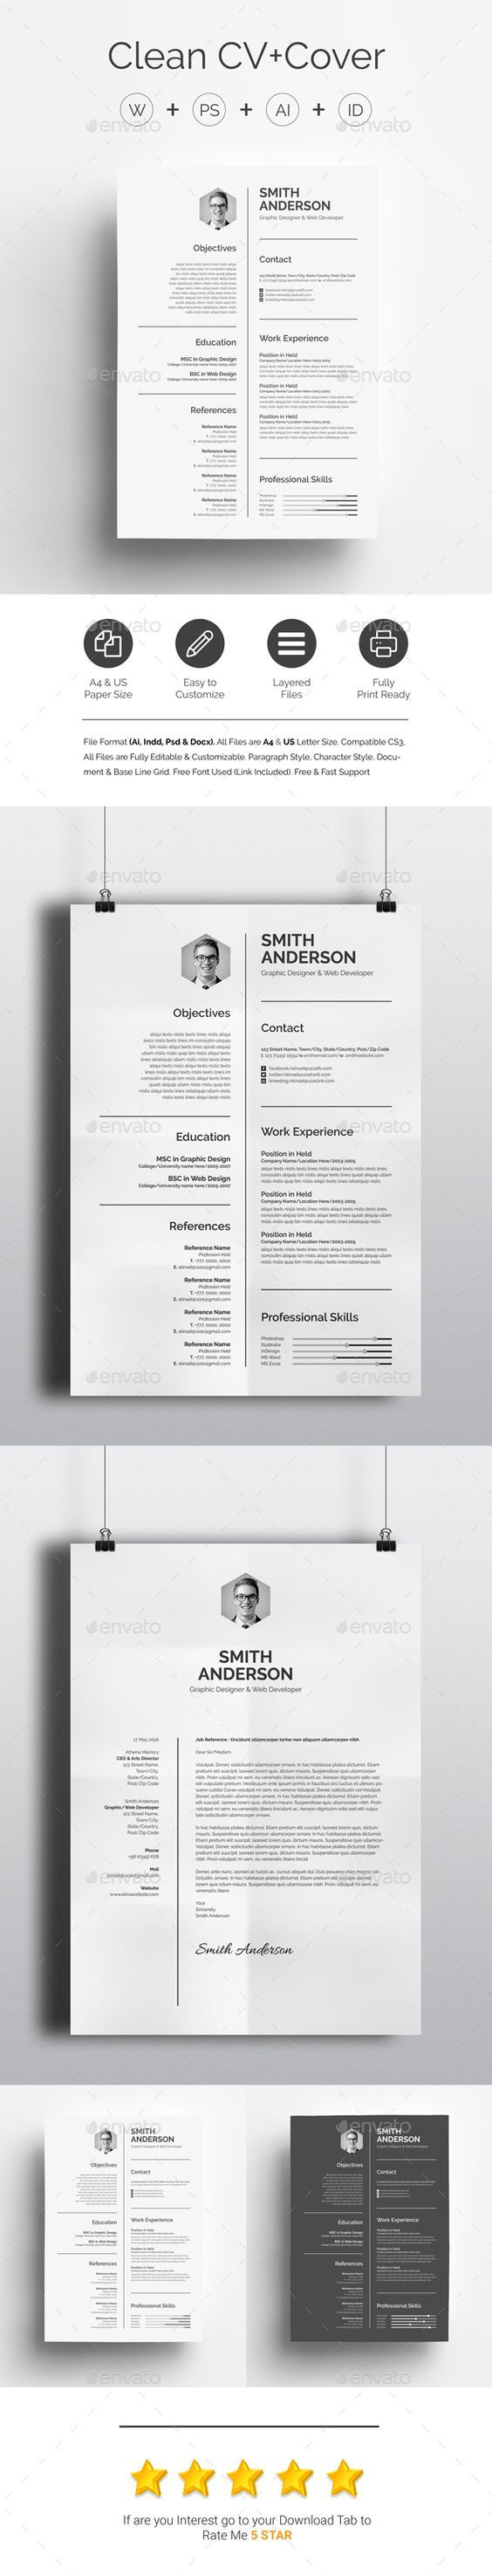 best ideas about professional cv examples resume professional modern resume template for ms word cv template for word resume template